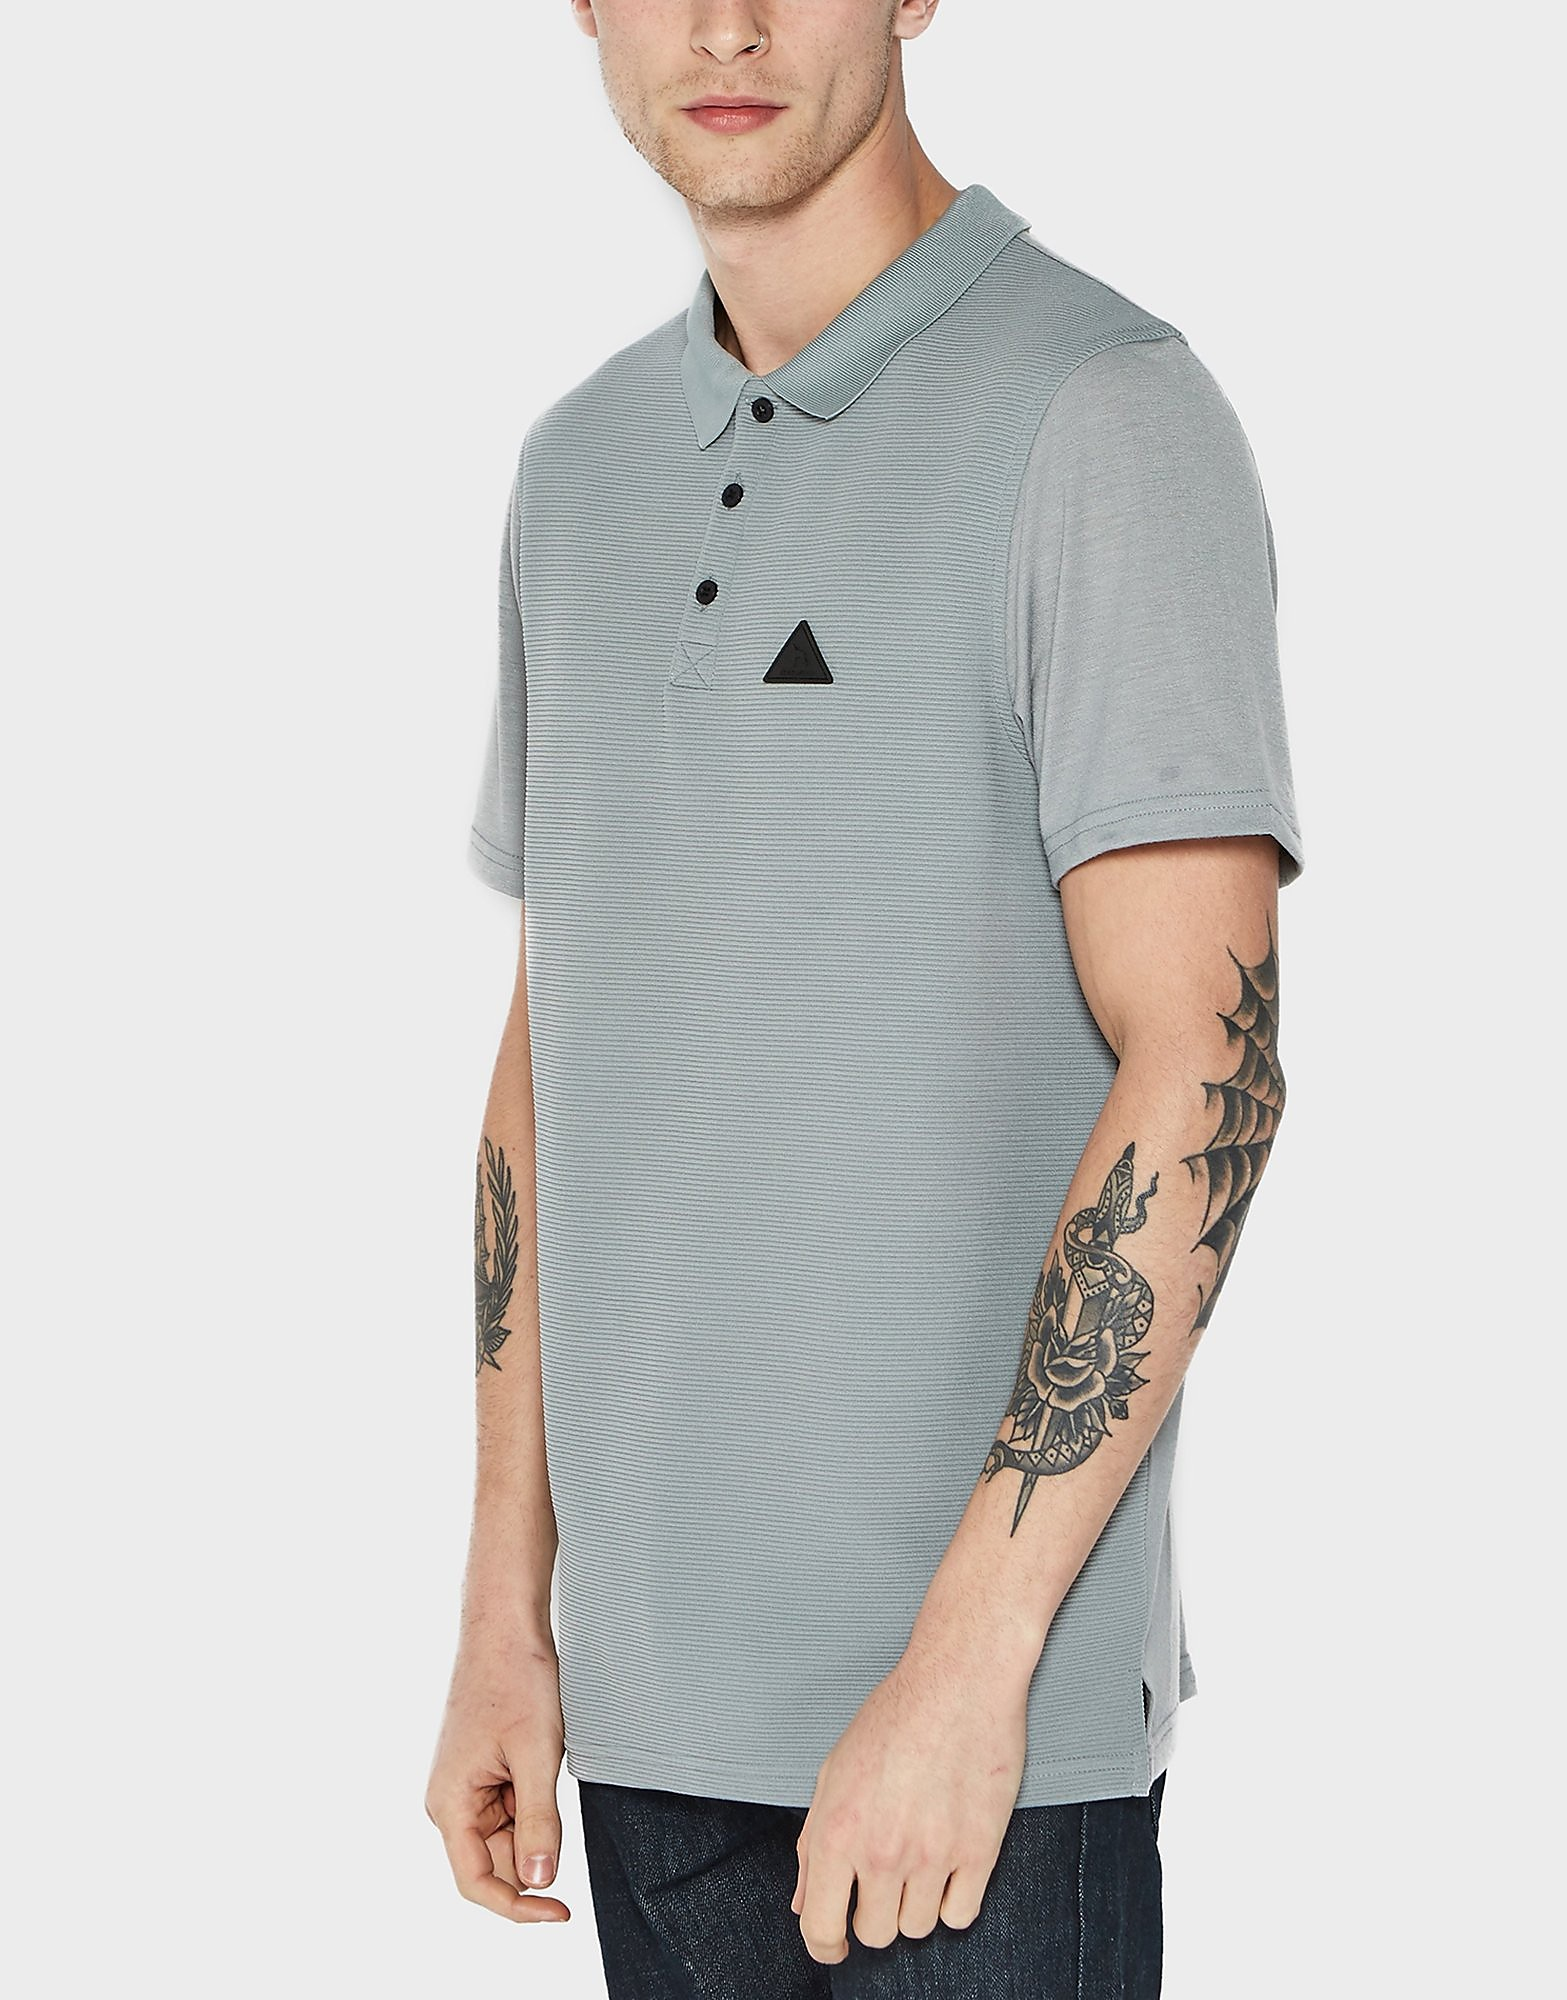 One True Saxon Access Polo Shirt - Exclusive